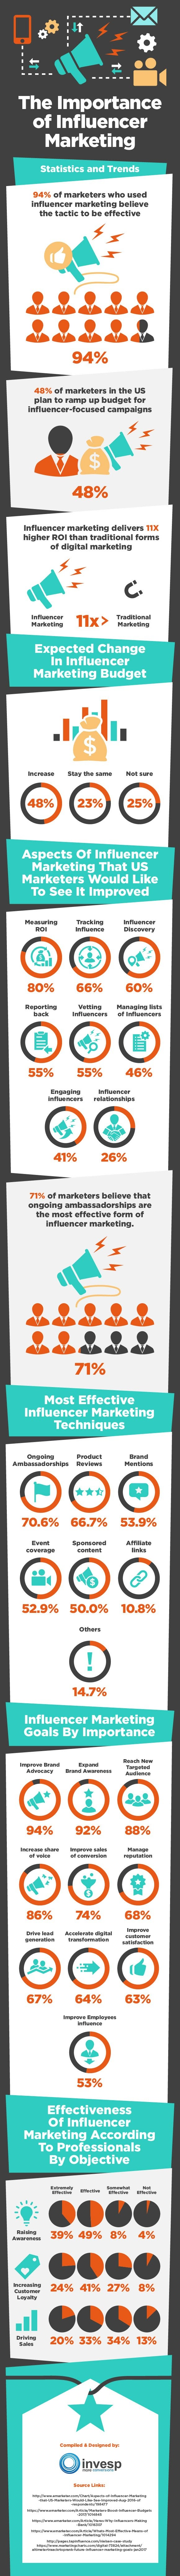 The Importance of Influencer Marketing – Statistics and Trends - #infographic